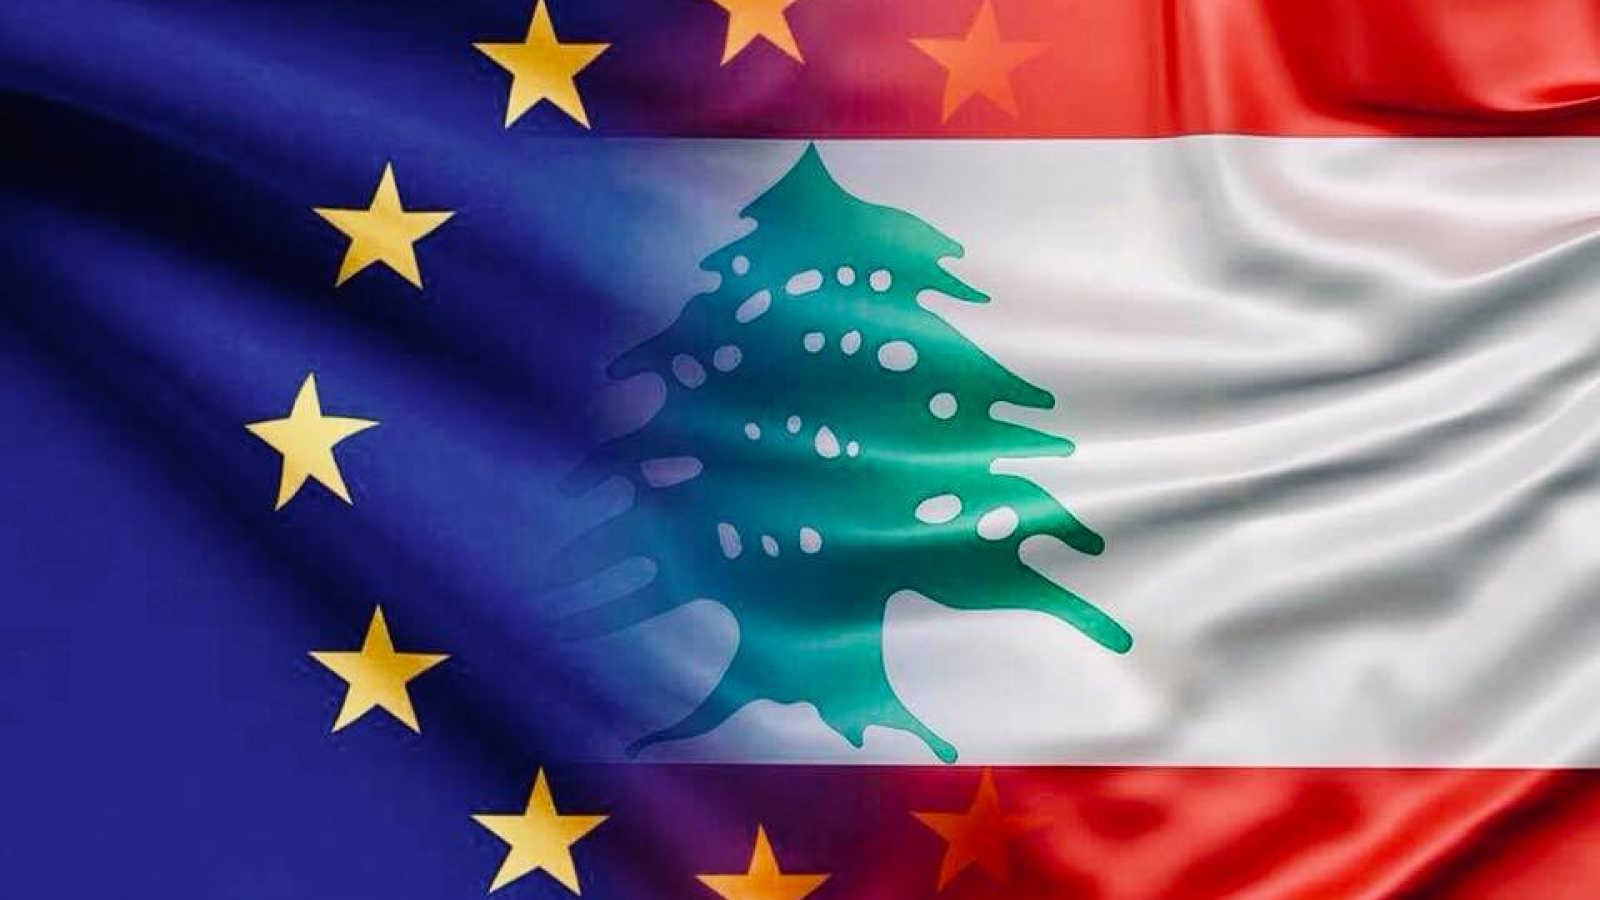 Statement following Beirut blast: EU offers full support to Lebanon and the Lebanese people